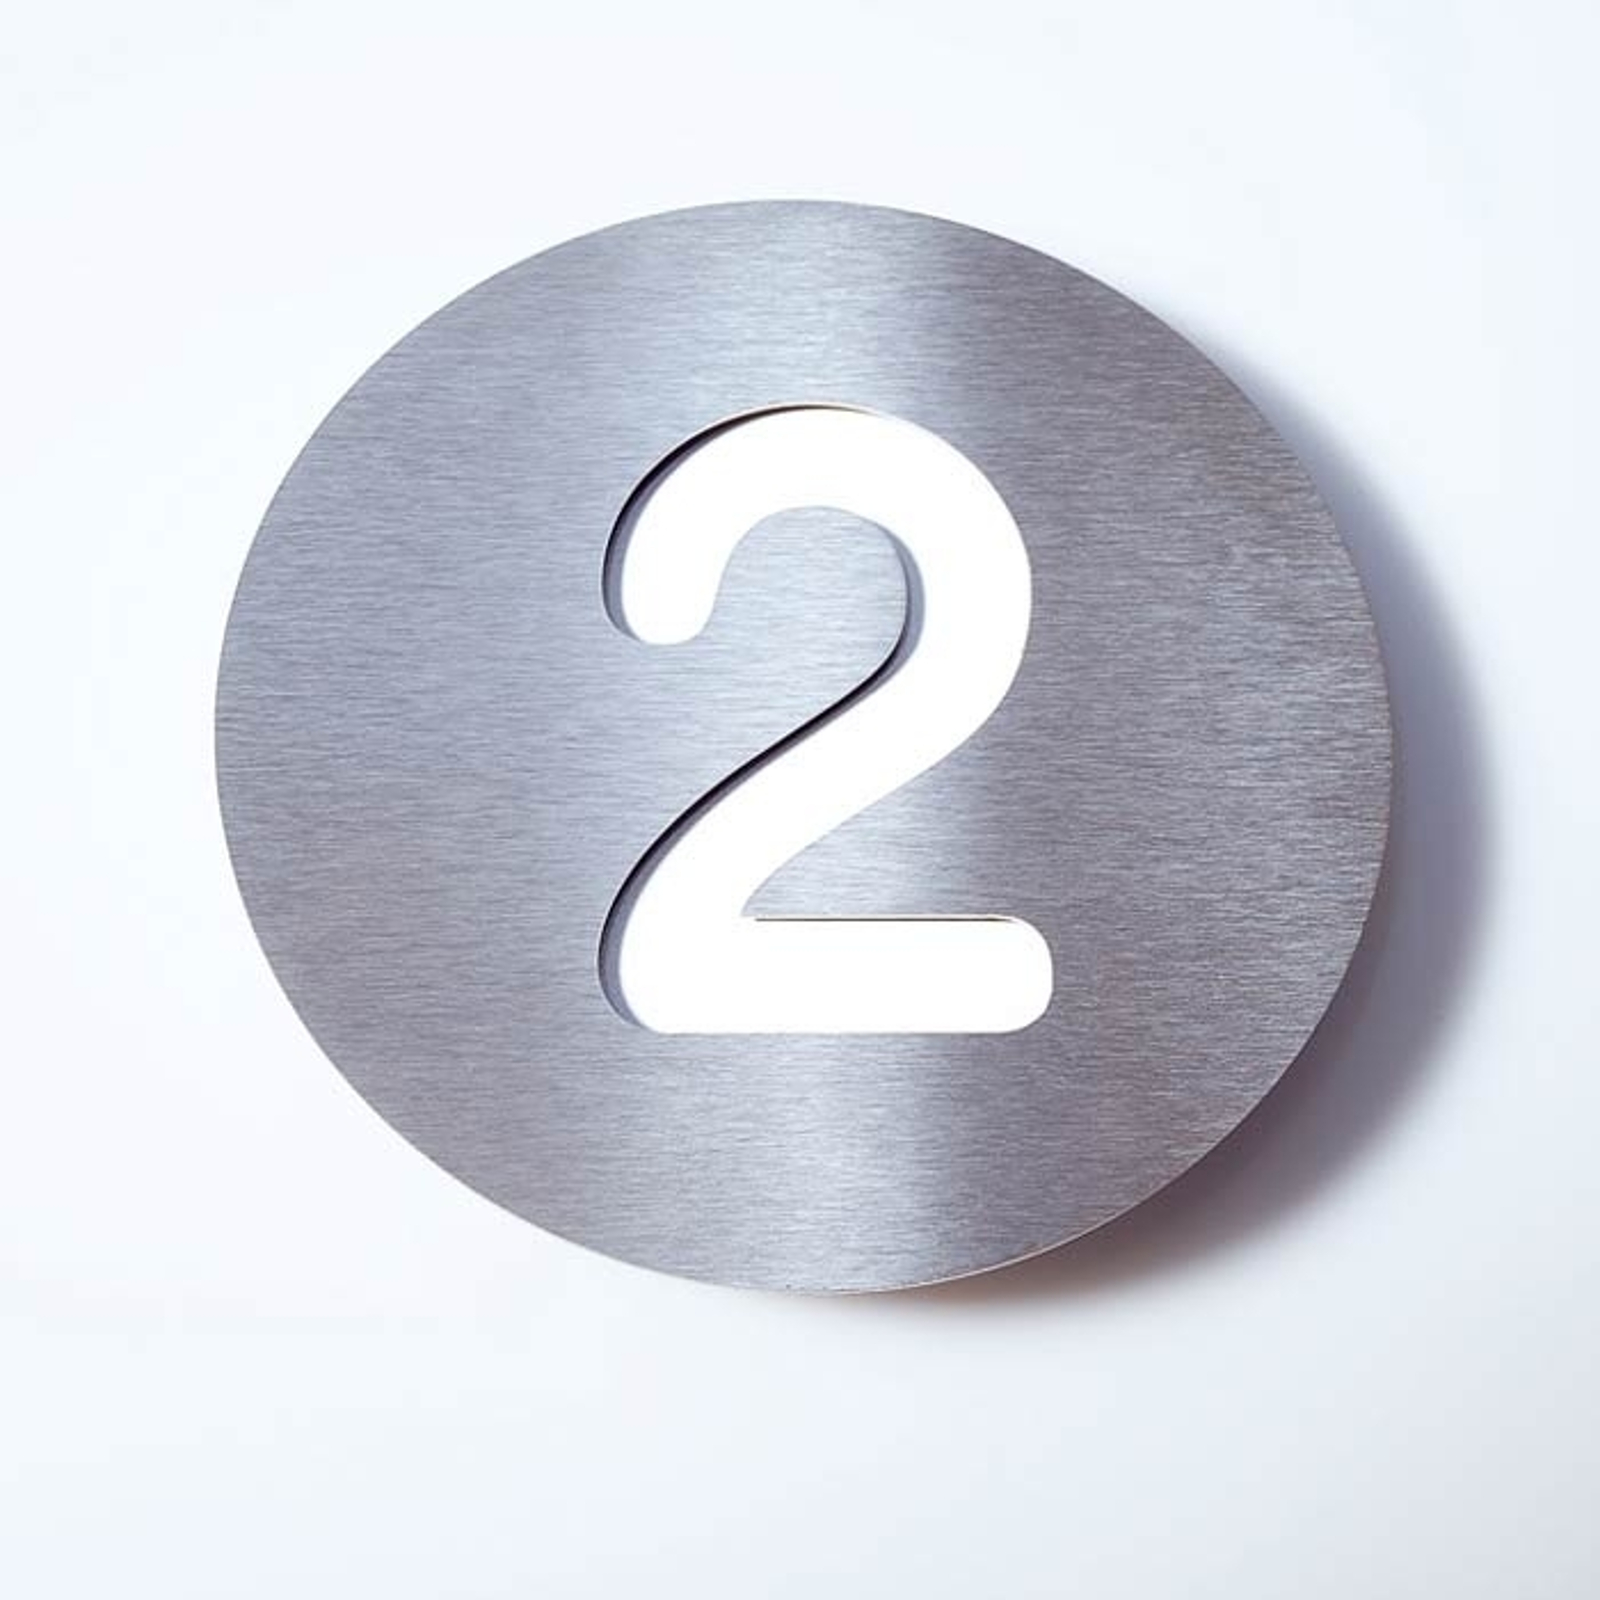 Stainless steel house number Round_1057080_1